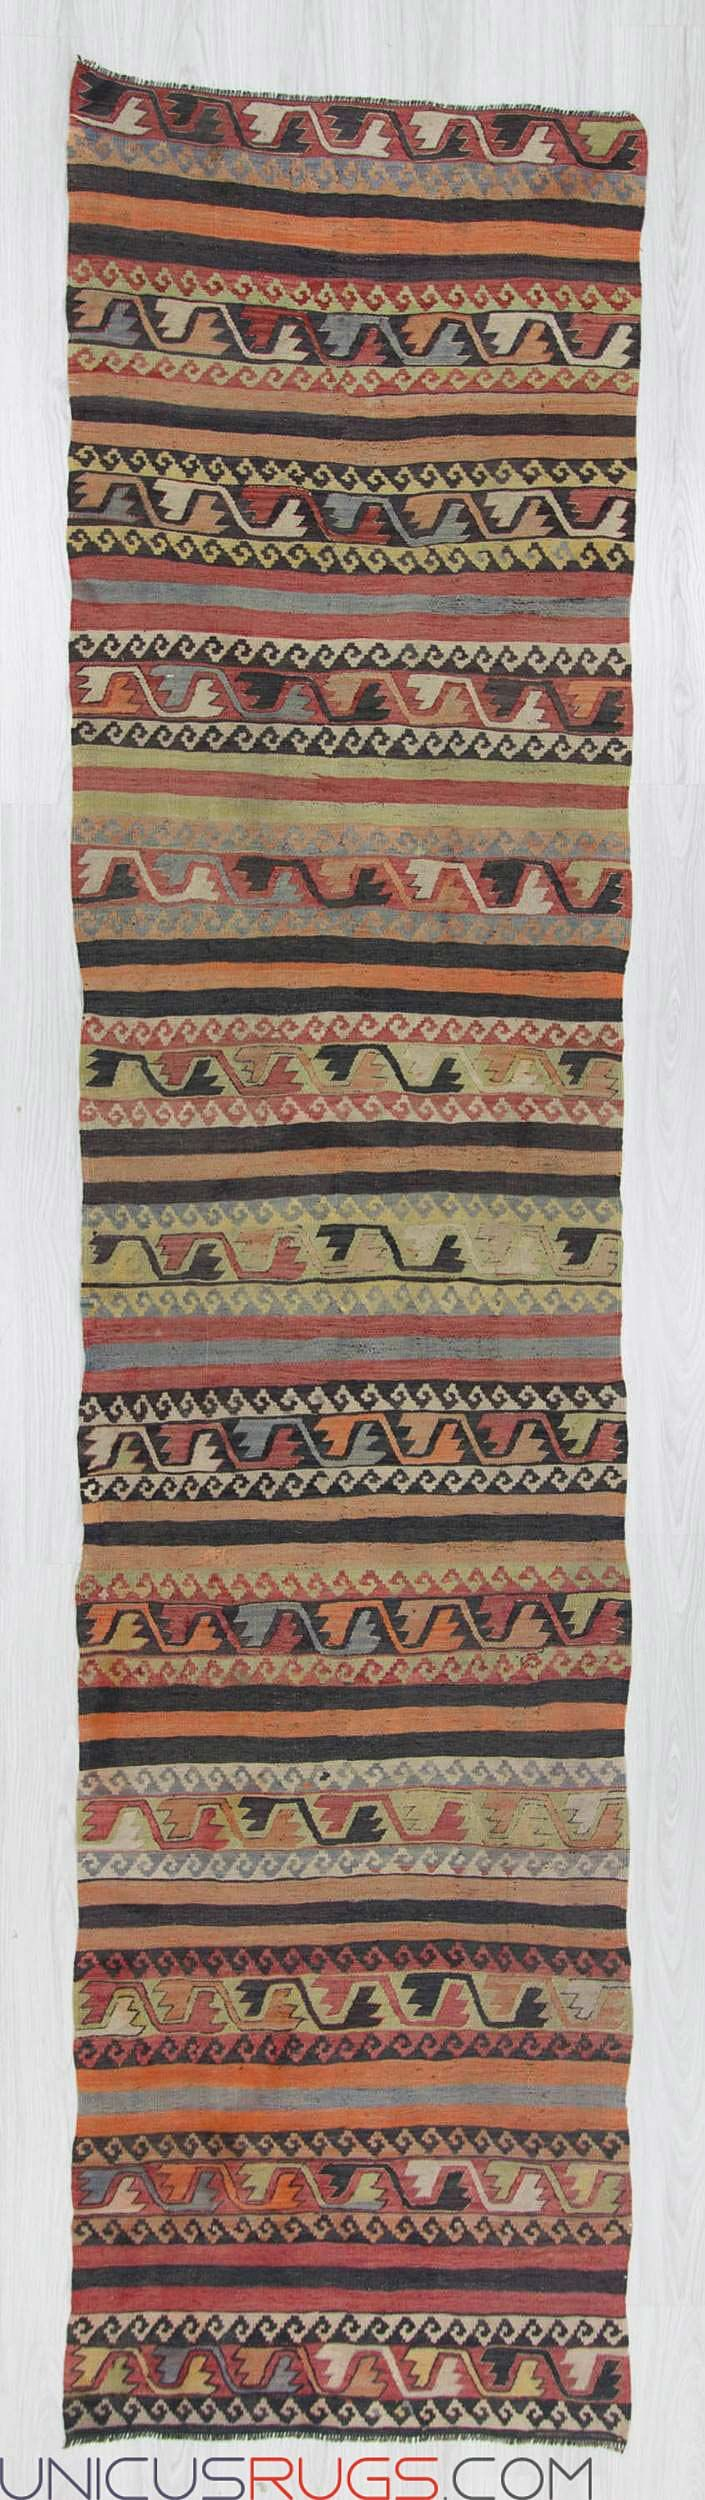 "Vintage kilim runner from Malatya region of Turkey. In good condition. Approximately 50-60 years old Width: 2' 10"" - Length: 12' 1"" RUNNERS"